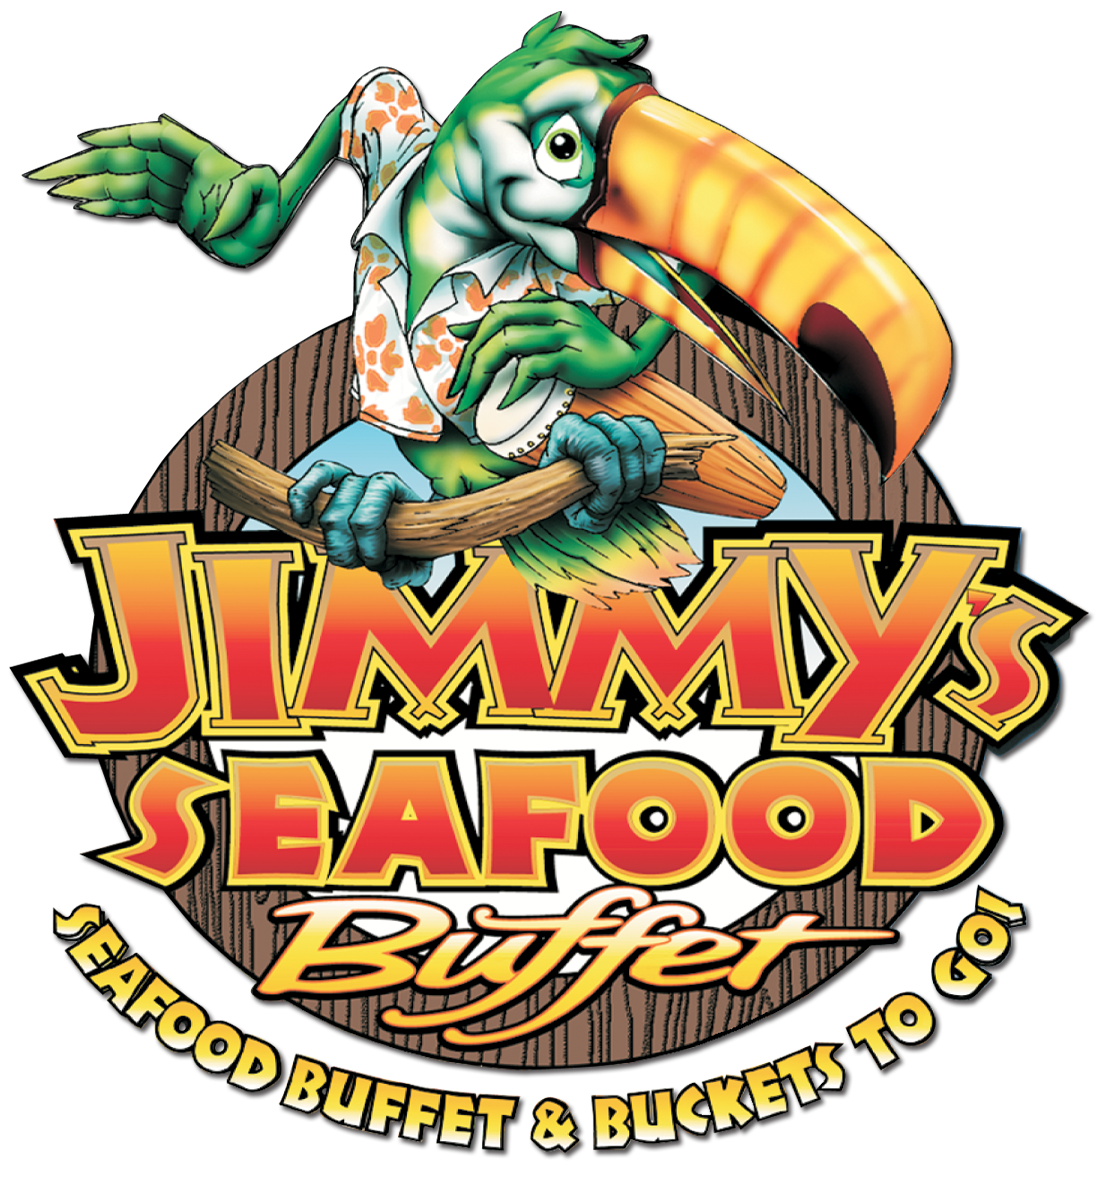 Brunch clipart seafood buffet. Home jimmy s jimmys